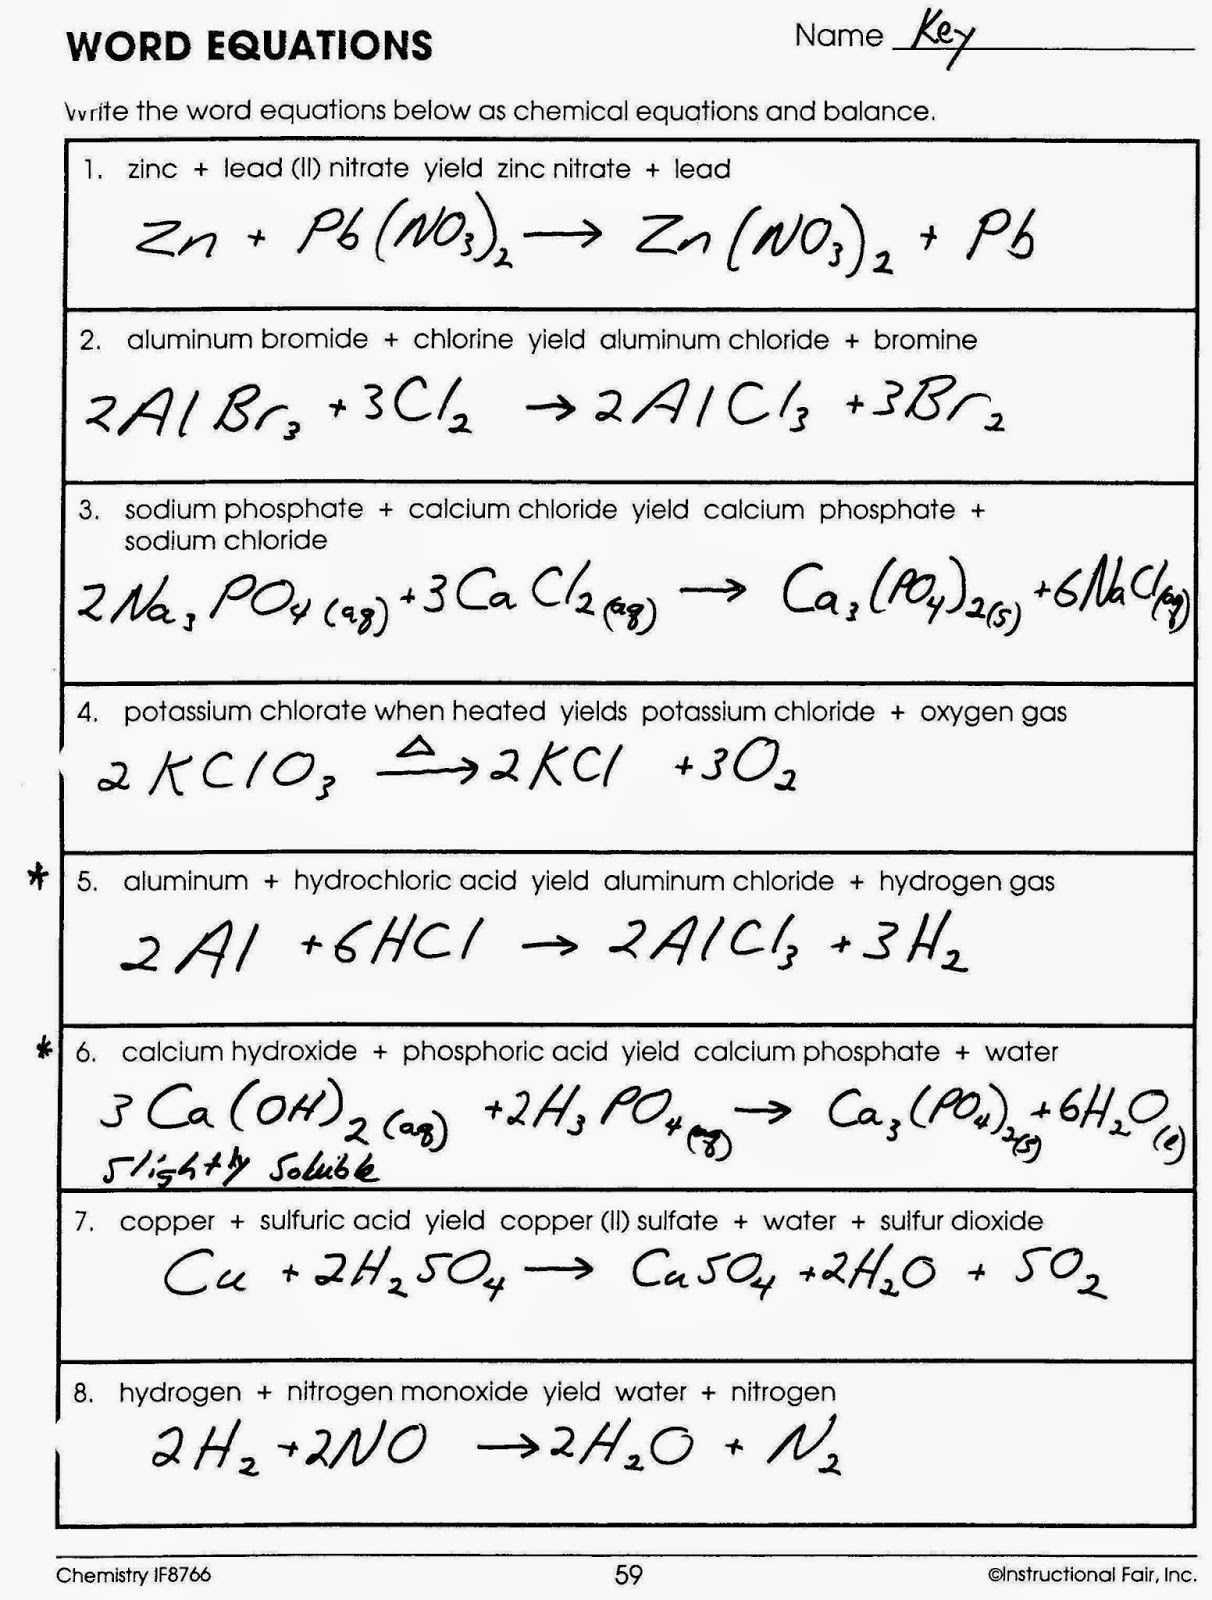 Balancing Chemical Equations Worksheet 1 Answers